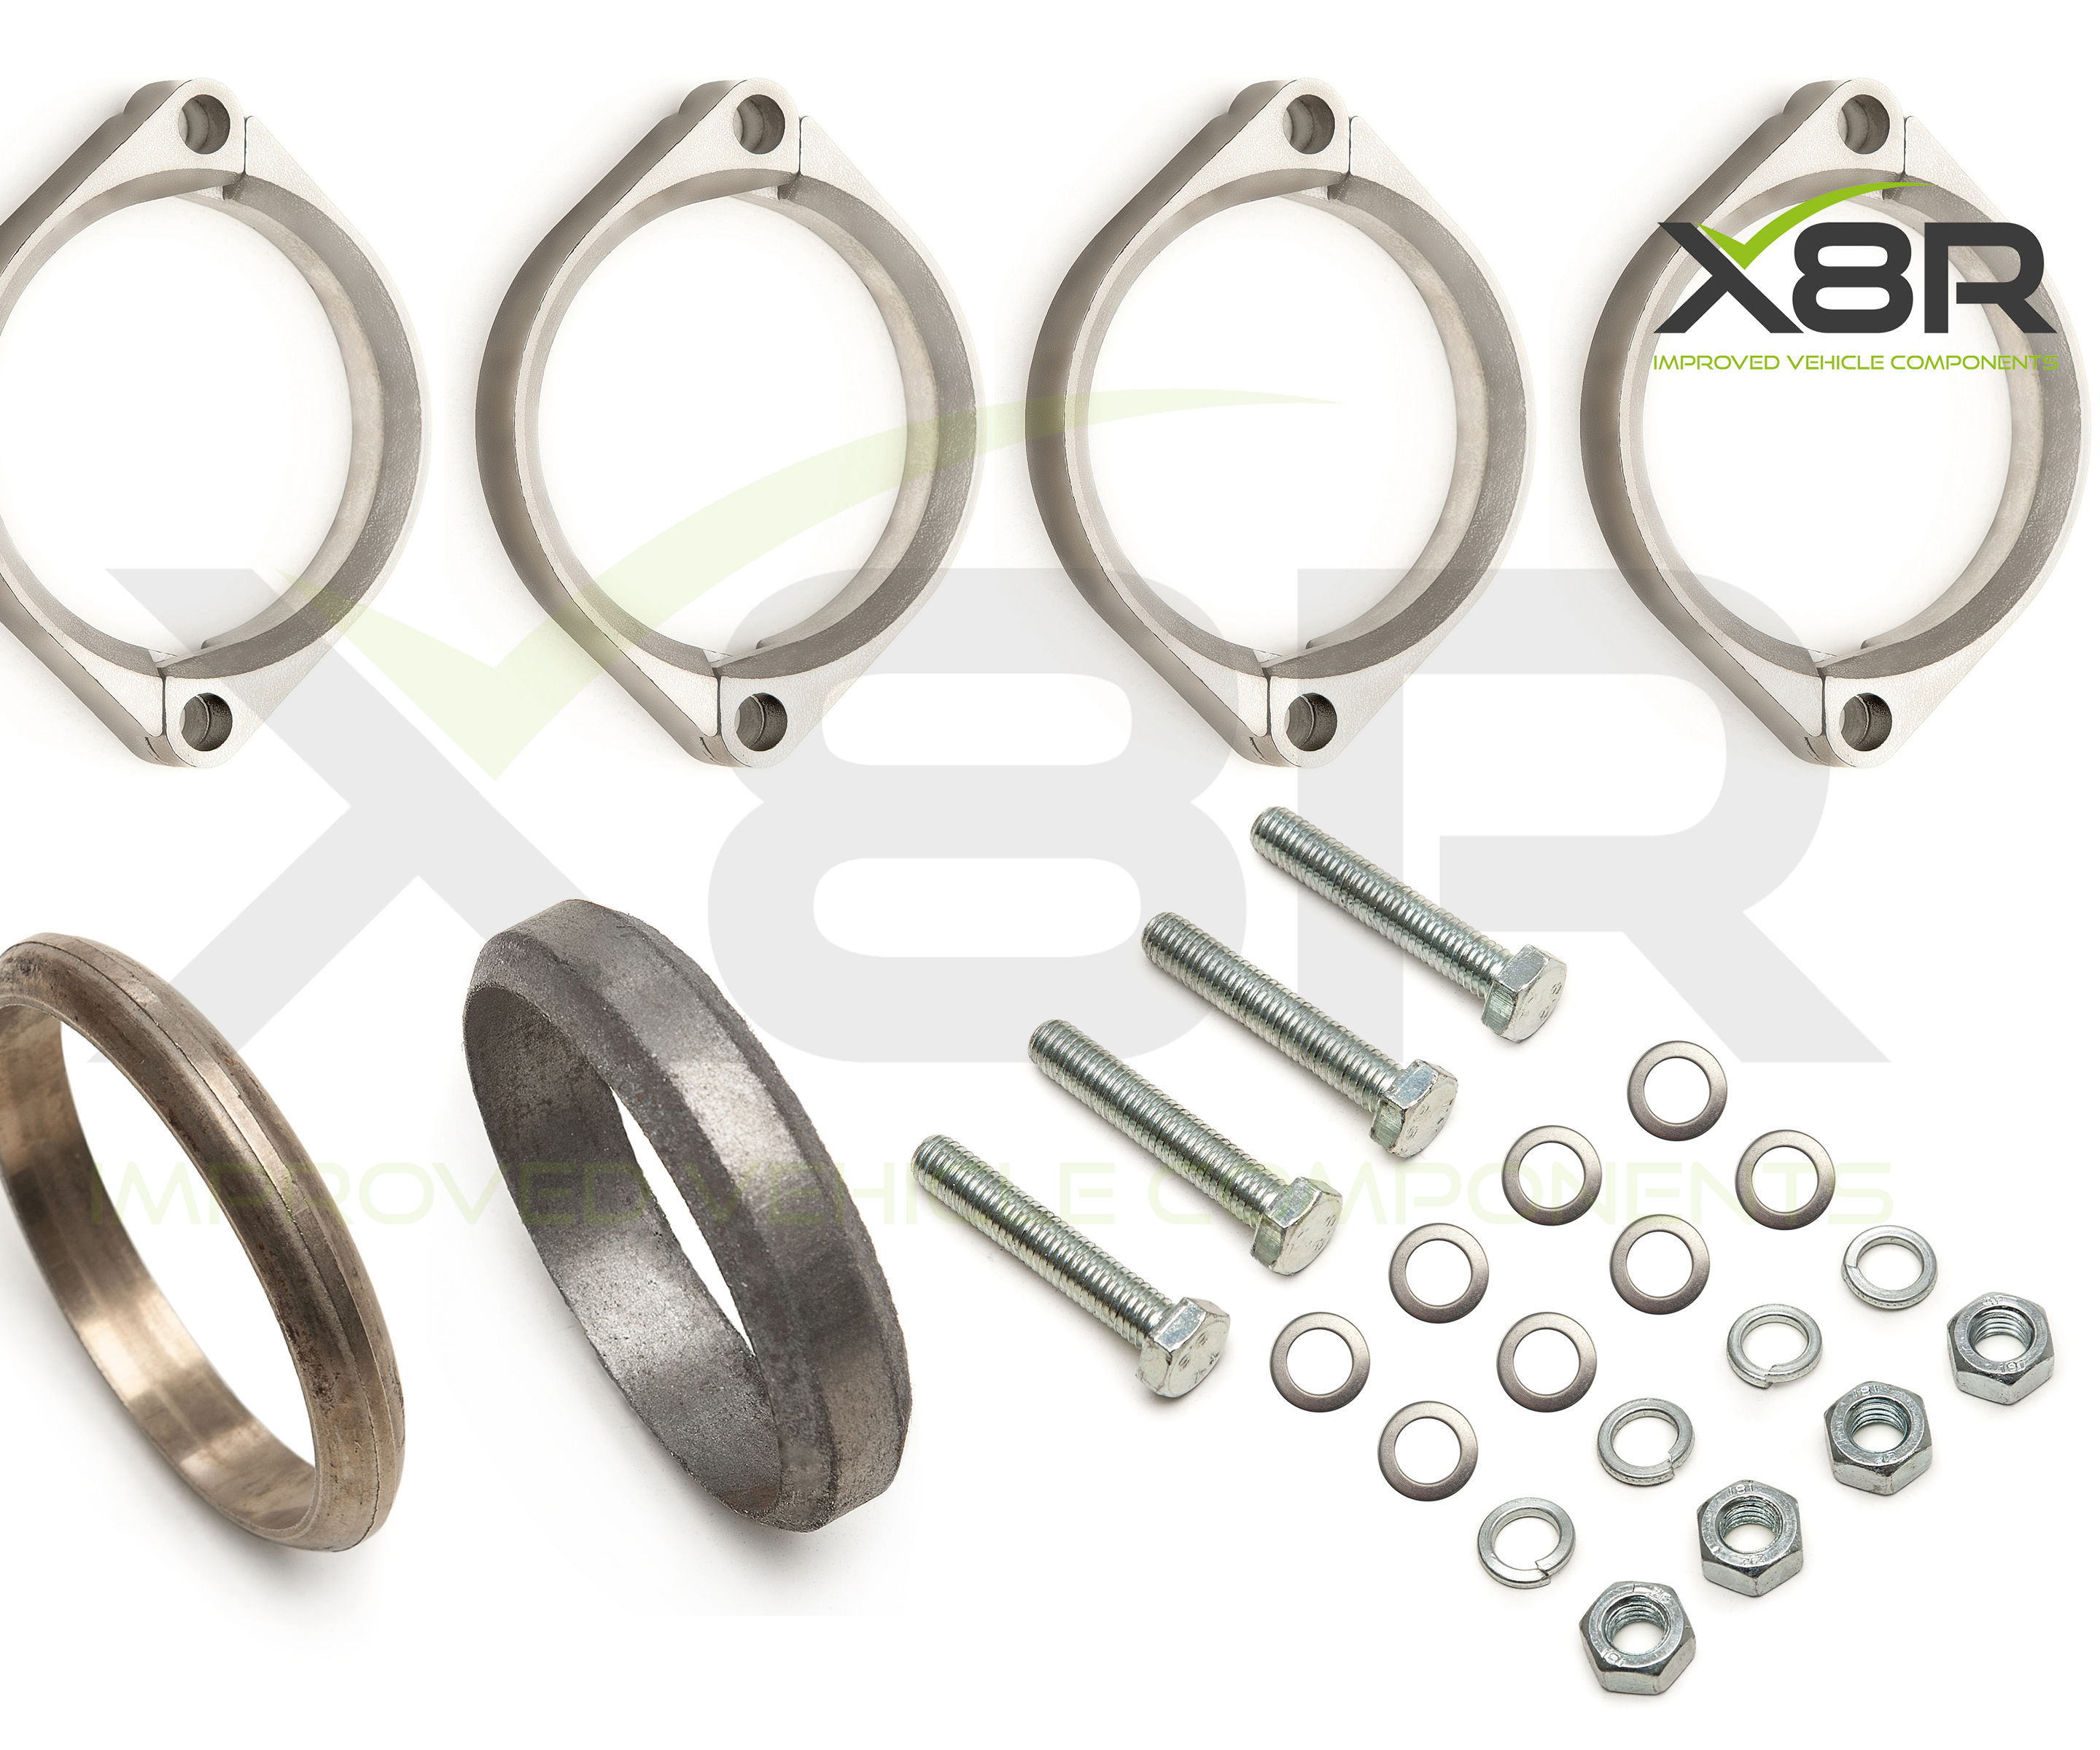 BMW E46 M3 Exhaust Muffler Back Box Flange Rusted Corroded Flanges Repair Kit Install Fitting Guide Instructions